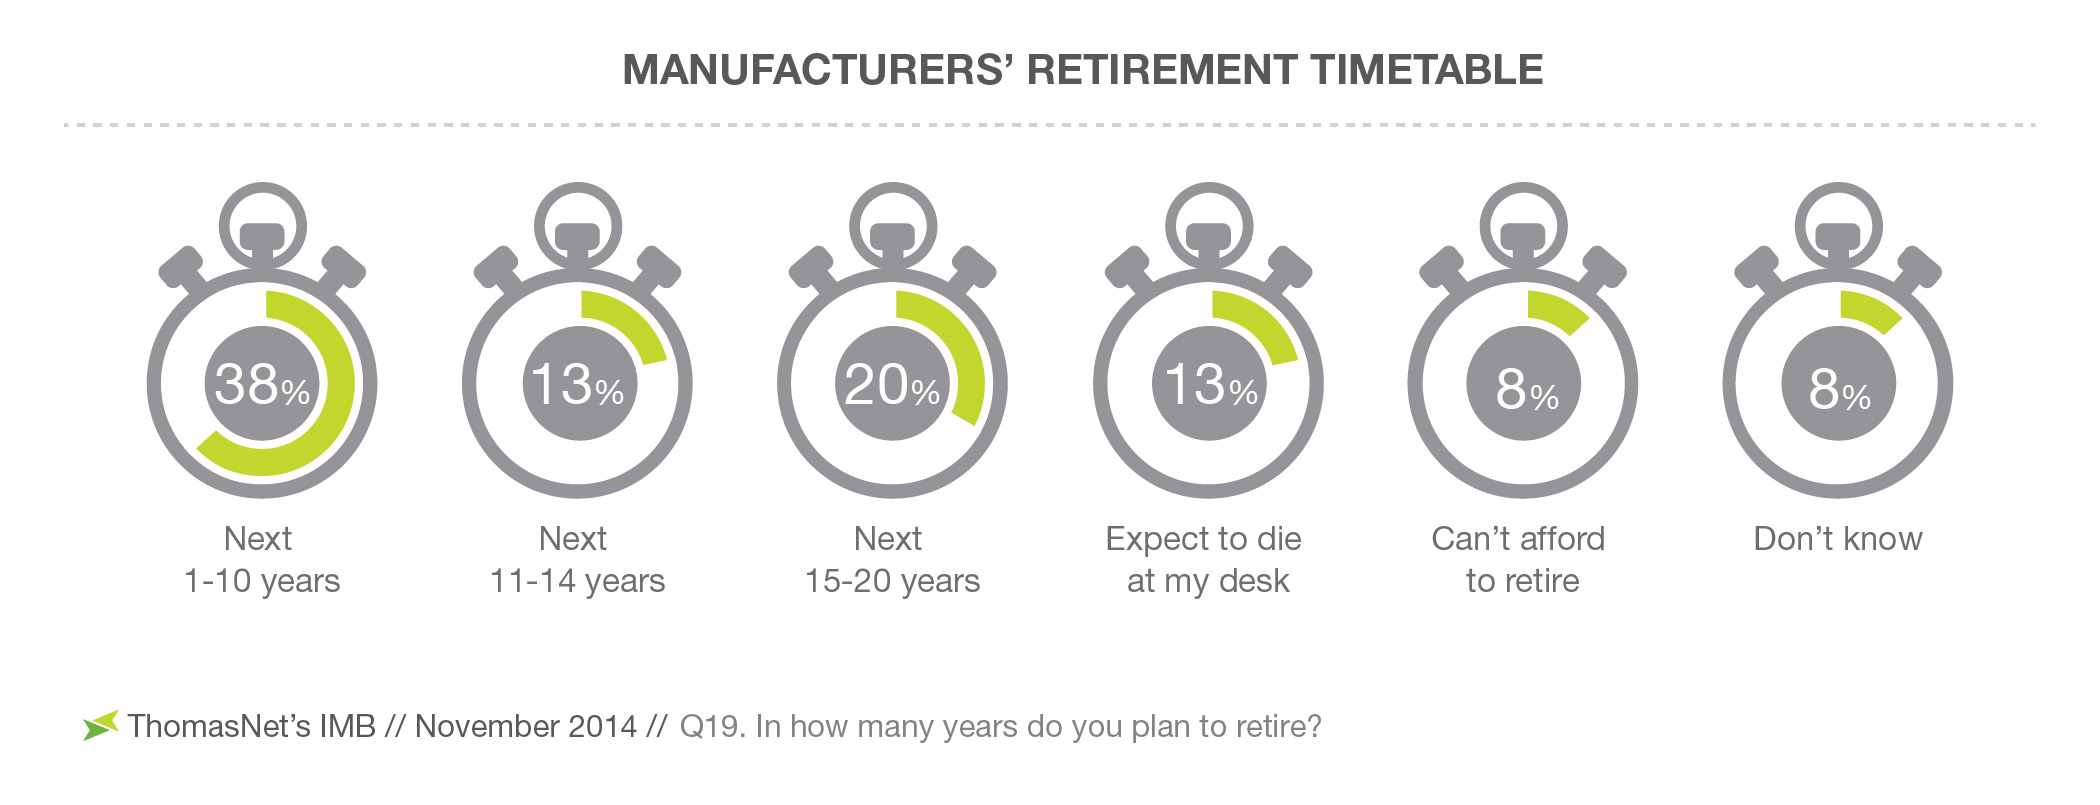 ManufacturersGÇÖ-Retirement-Timetable